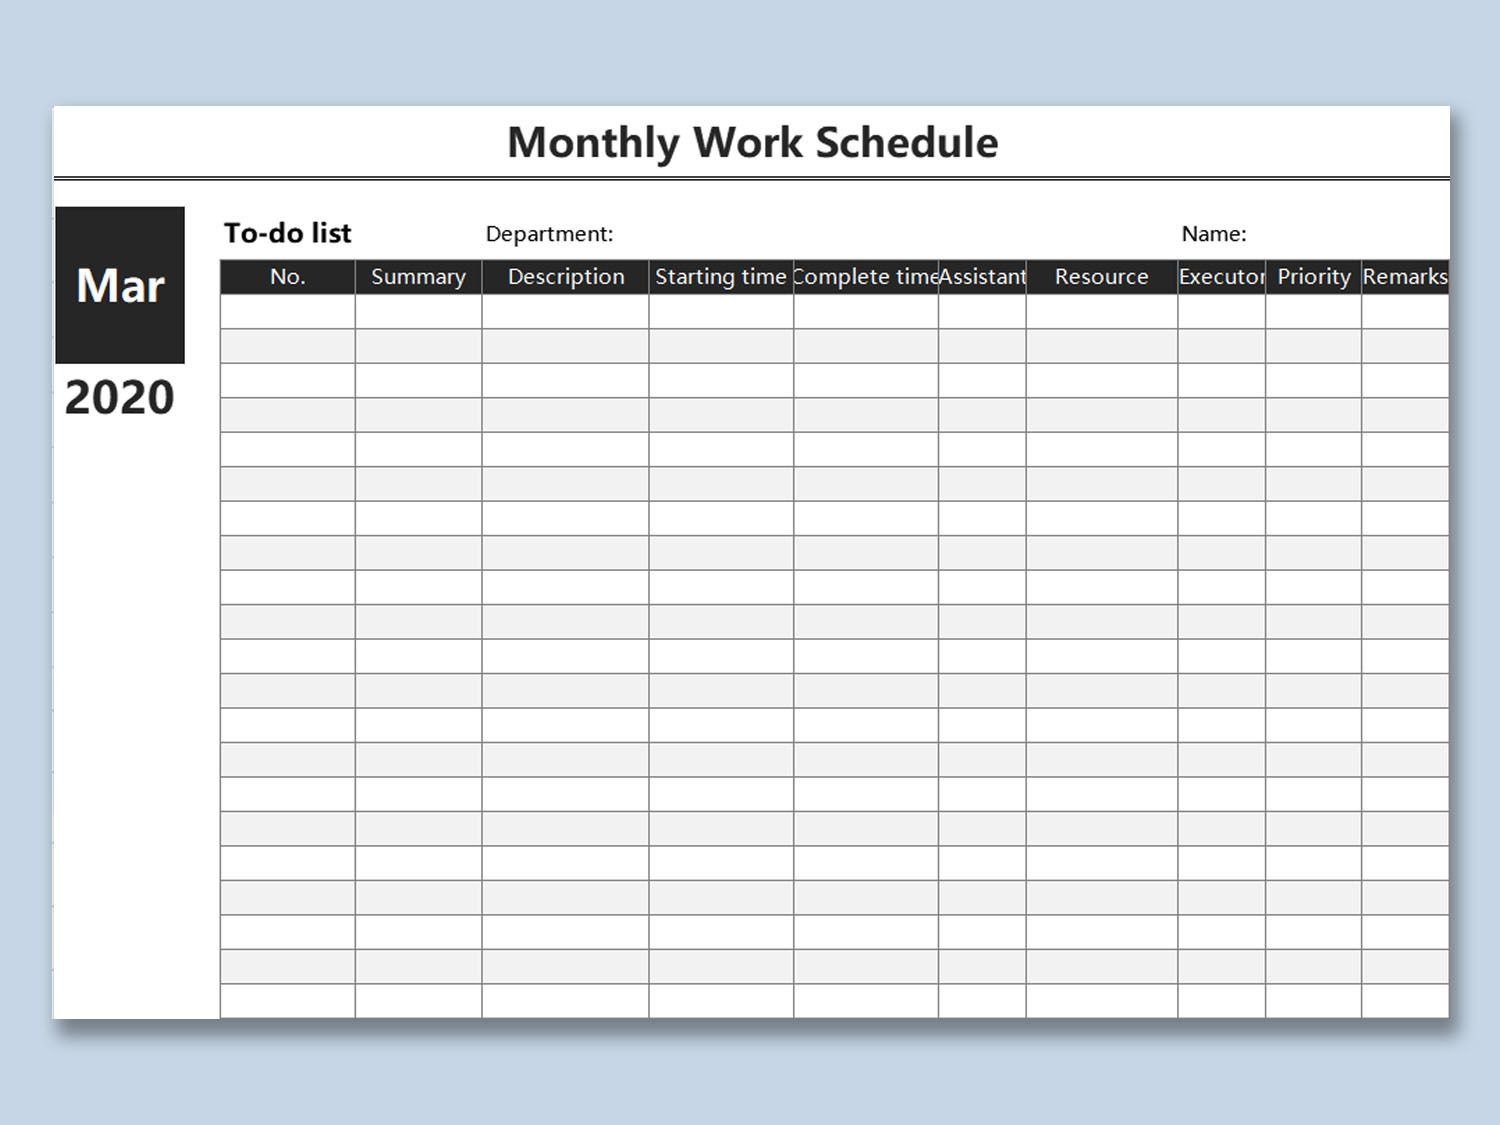 000 Magnificent Weekly Work Schedule Template High Resolution  Monthly Excel Free Download For Multiple Employee PlanFull